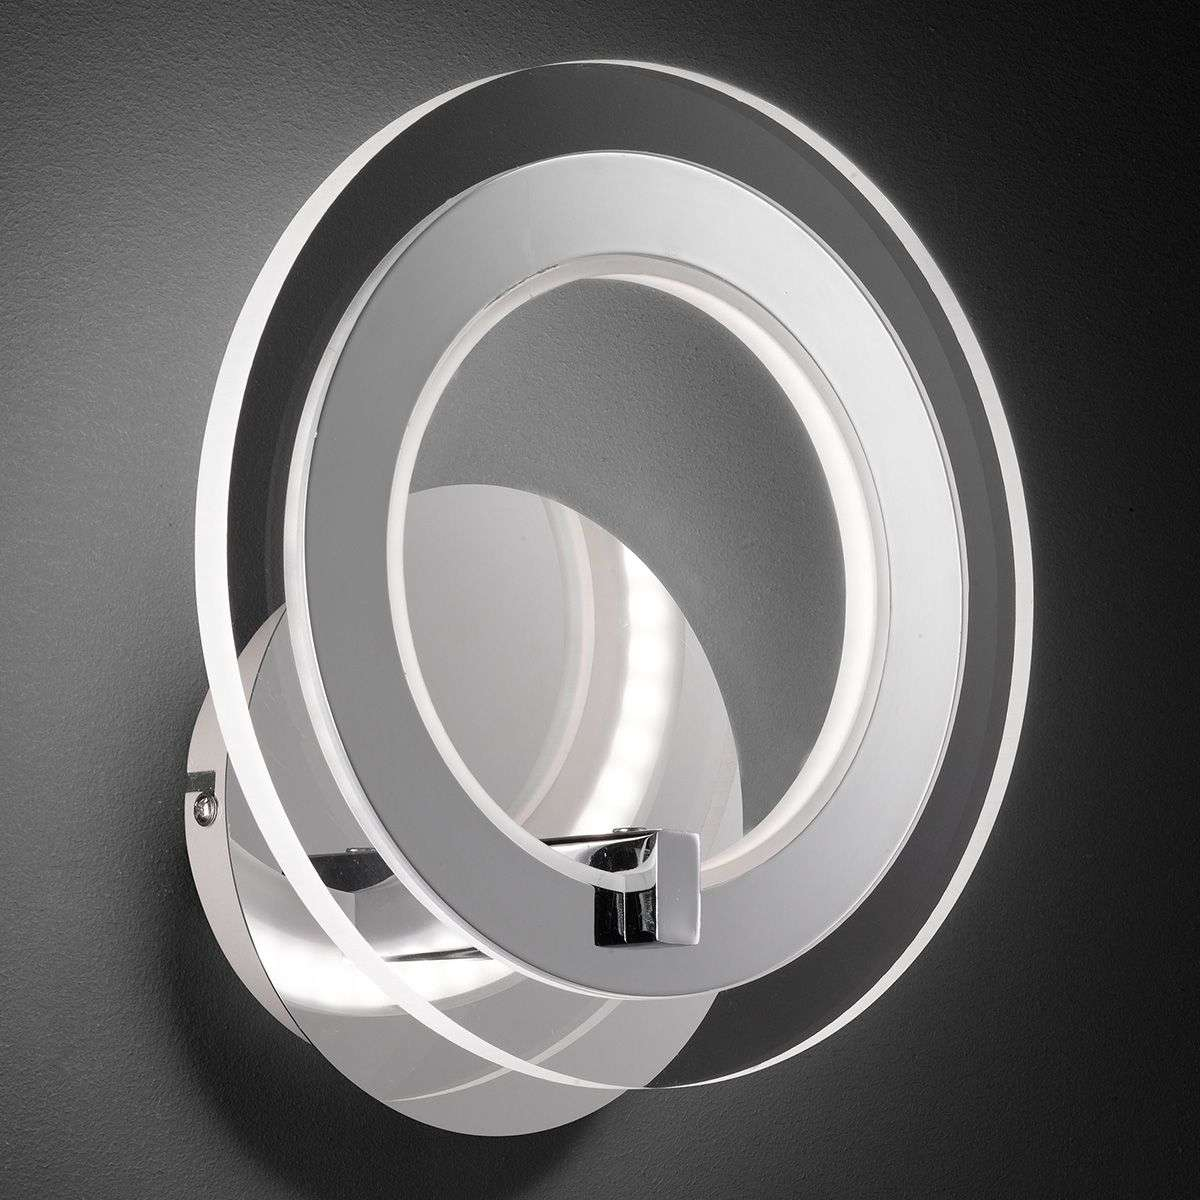 Noemi round led wall light lights noemi round led wall light 9651961 31 aloadofball Gallery